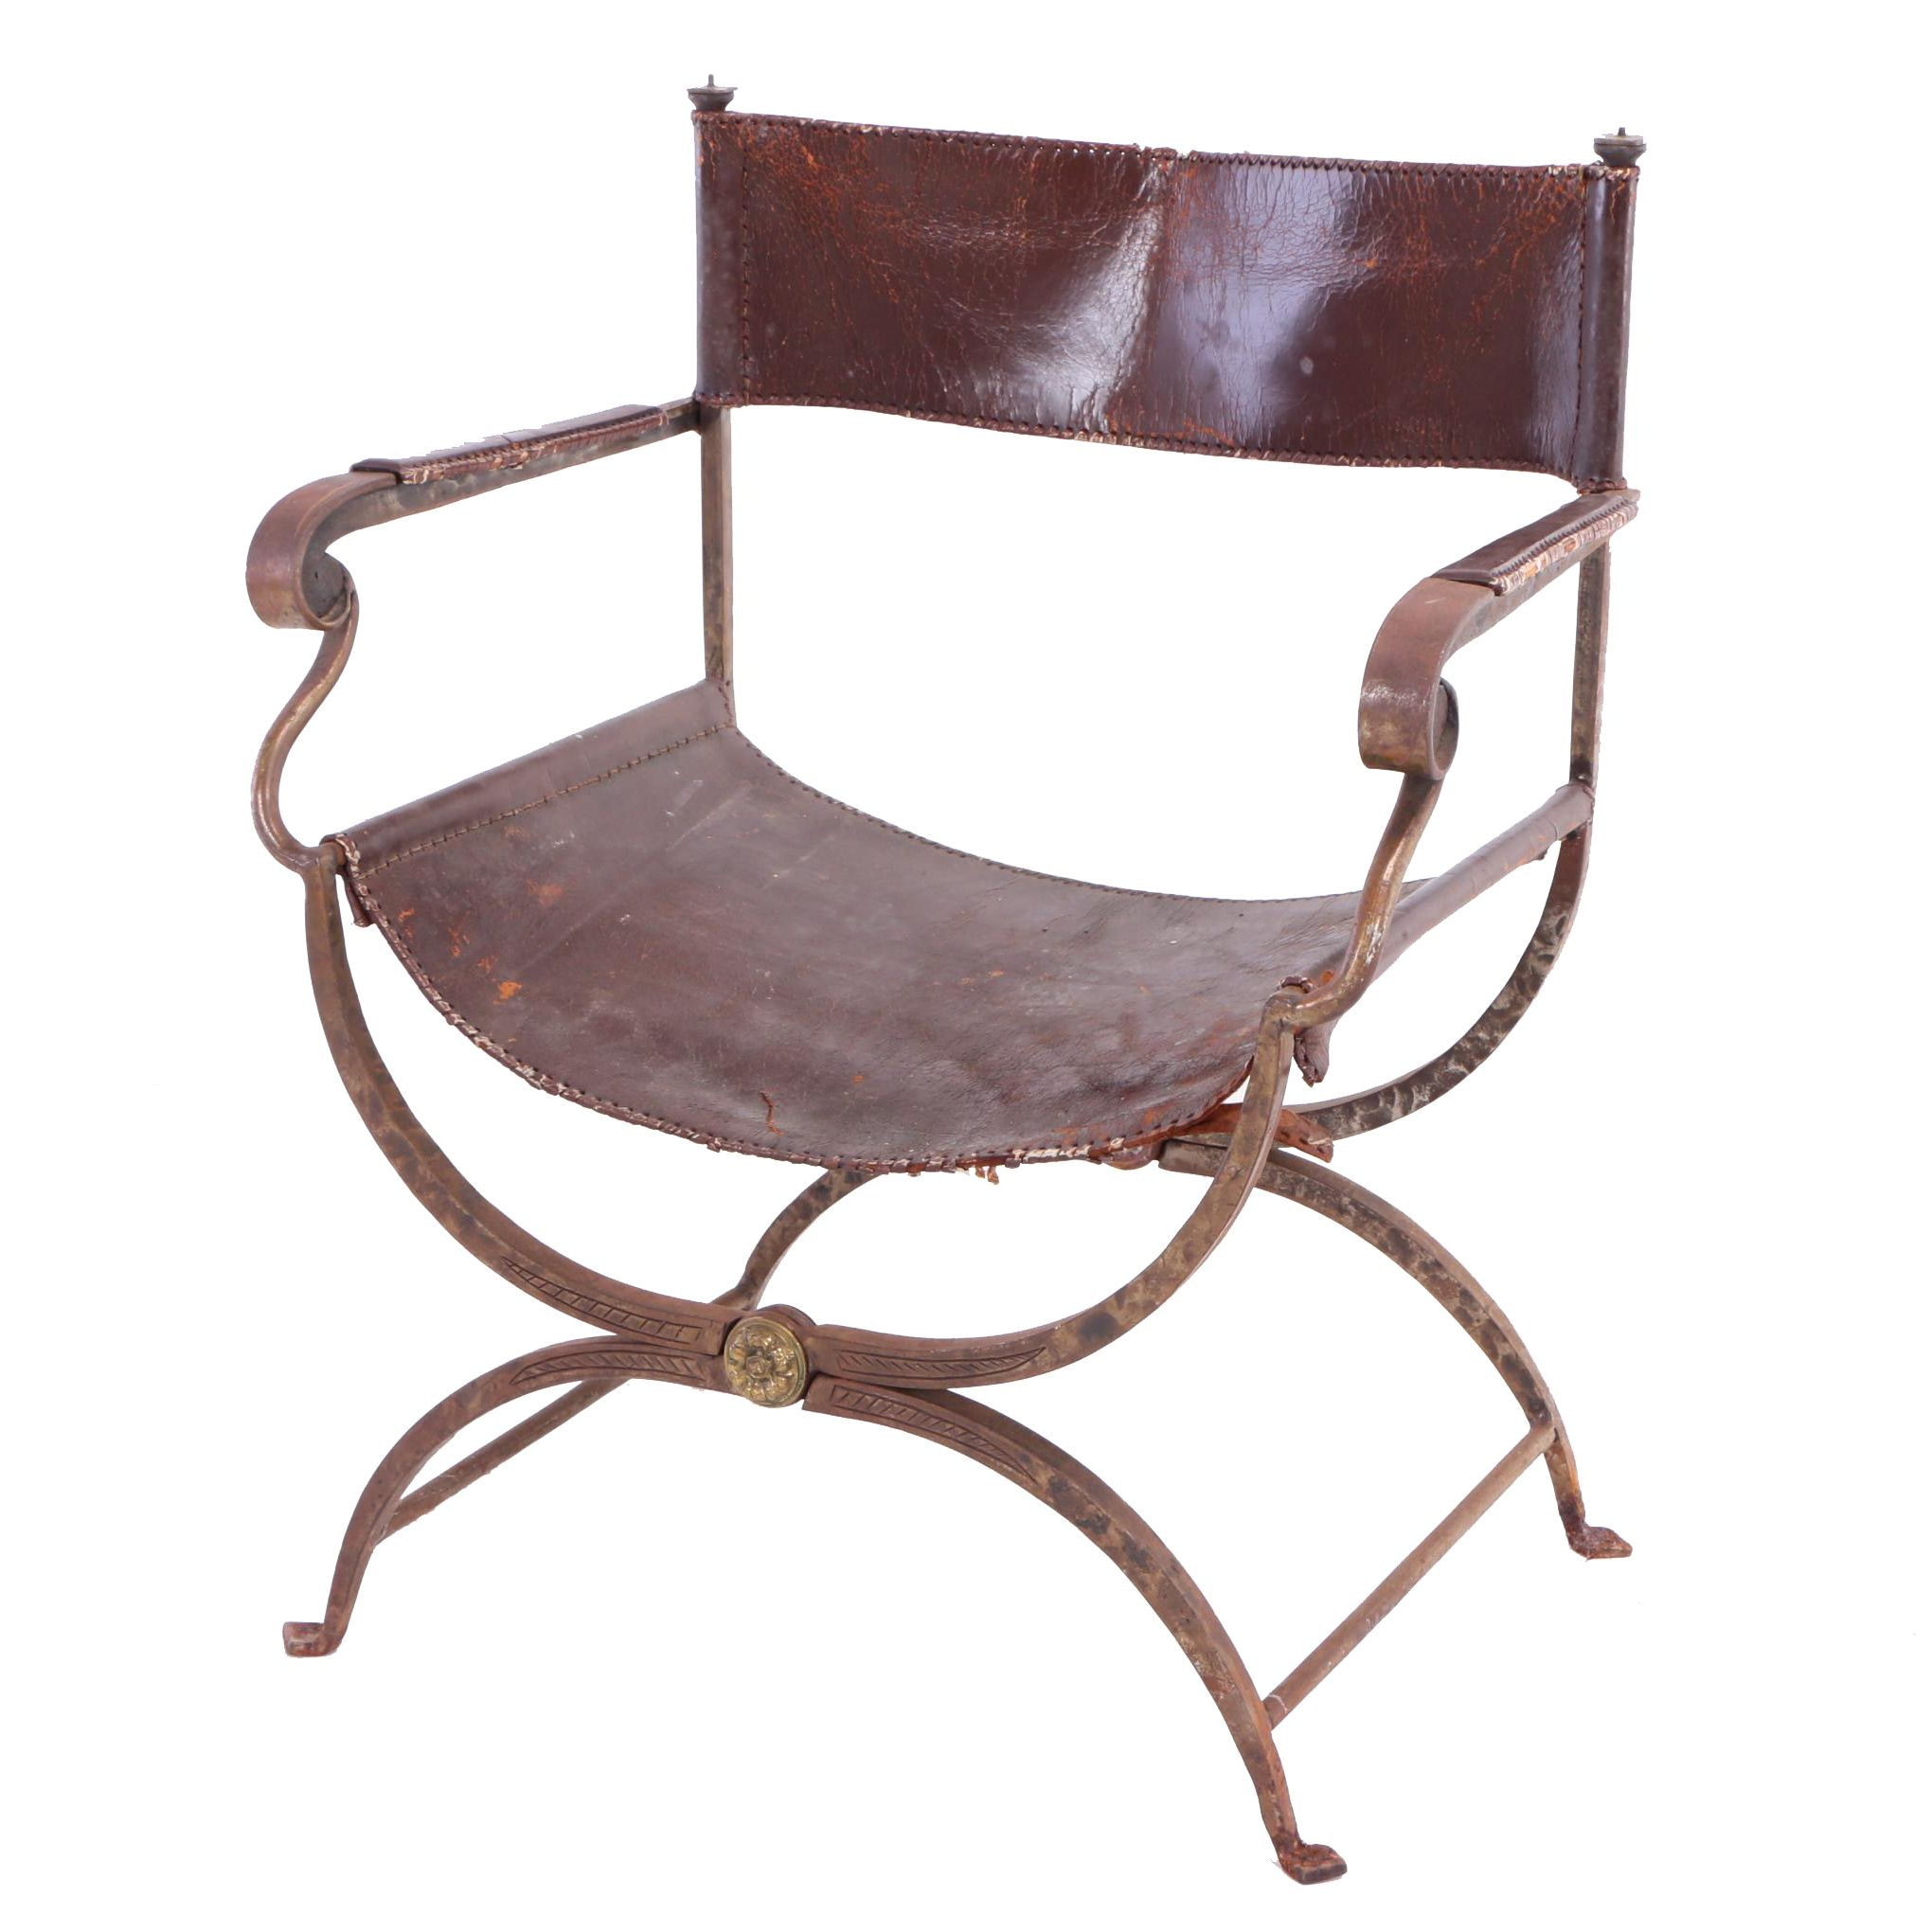 Brass-Mounted Iron and Brown Leather Campaign Chair, Probably French, Circa 1930